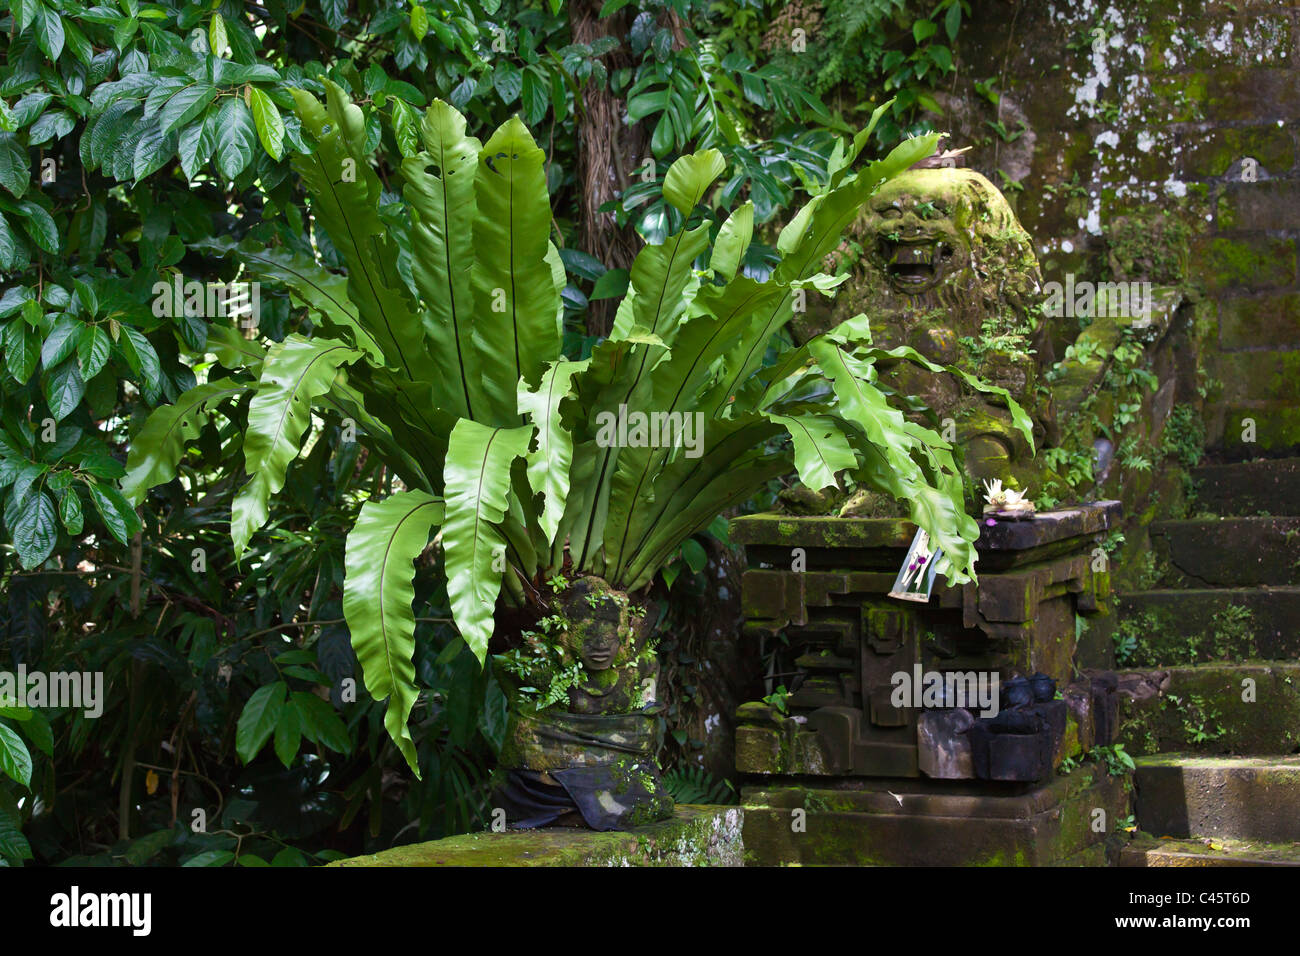 Plants grow on the Hindu temple of PURA TAMAN SARASWATI - UBUD, BALI, INDONESIA - Stock Image